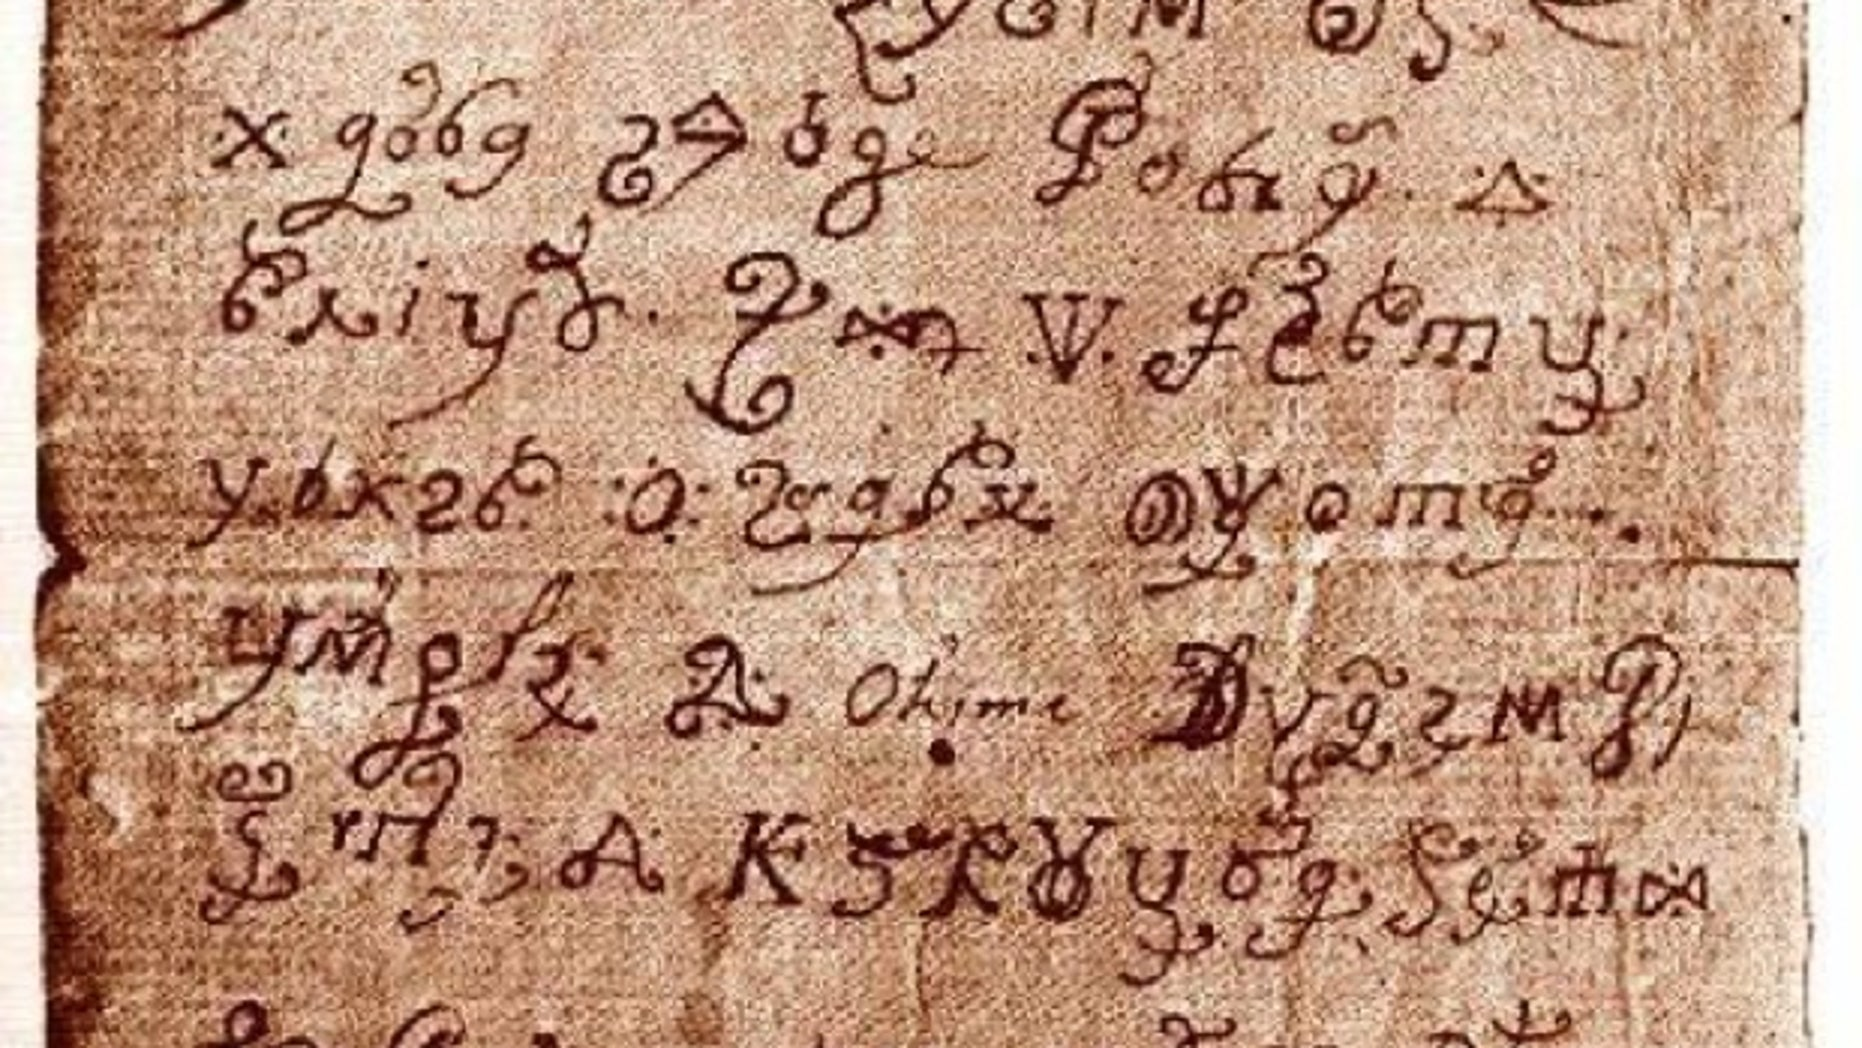 A letter supposedly written by a nun possessed by Satan has been deciphered.